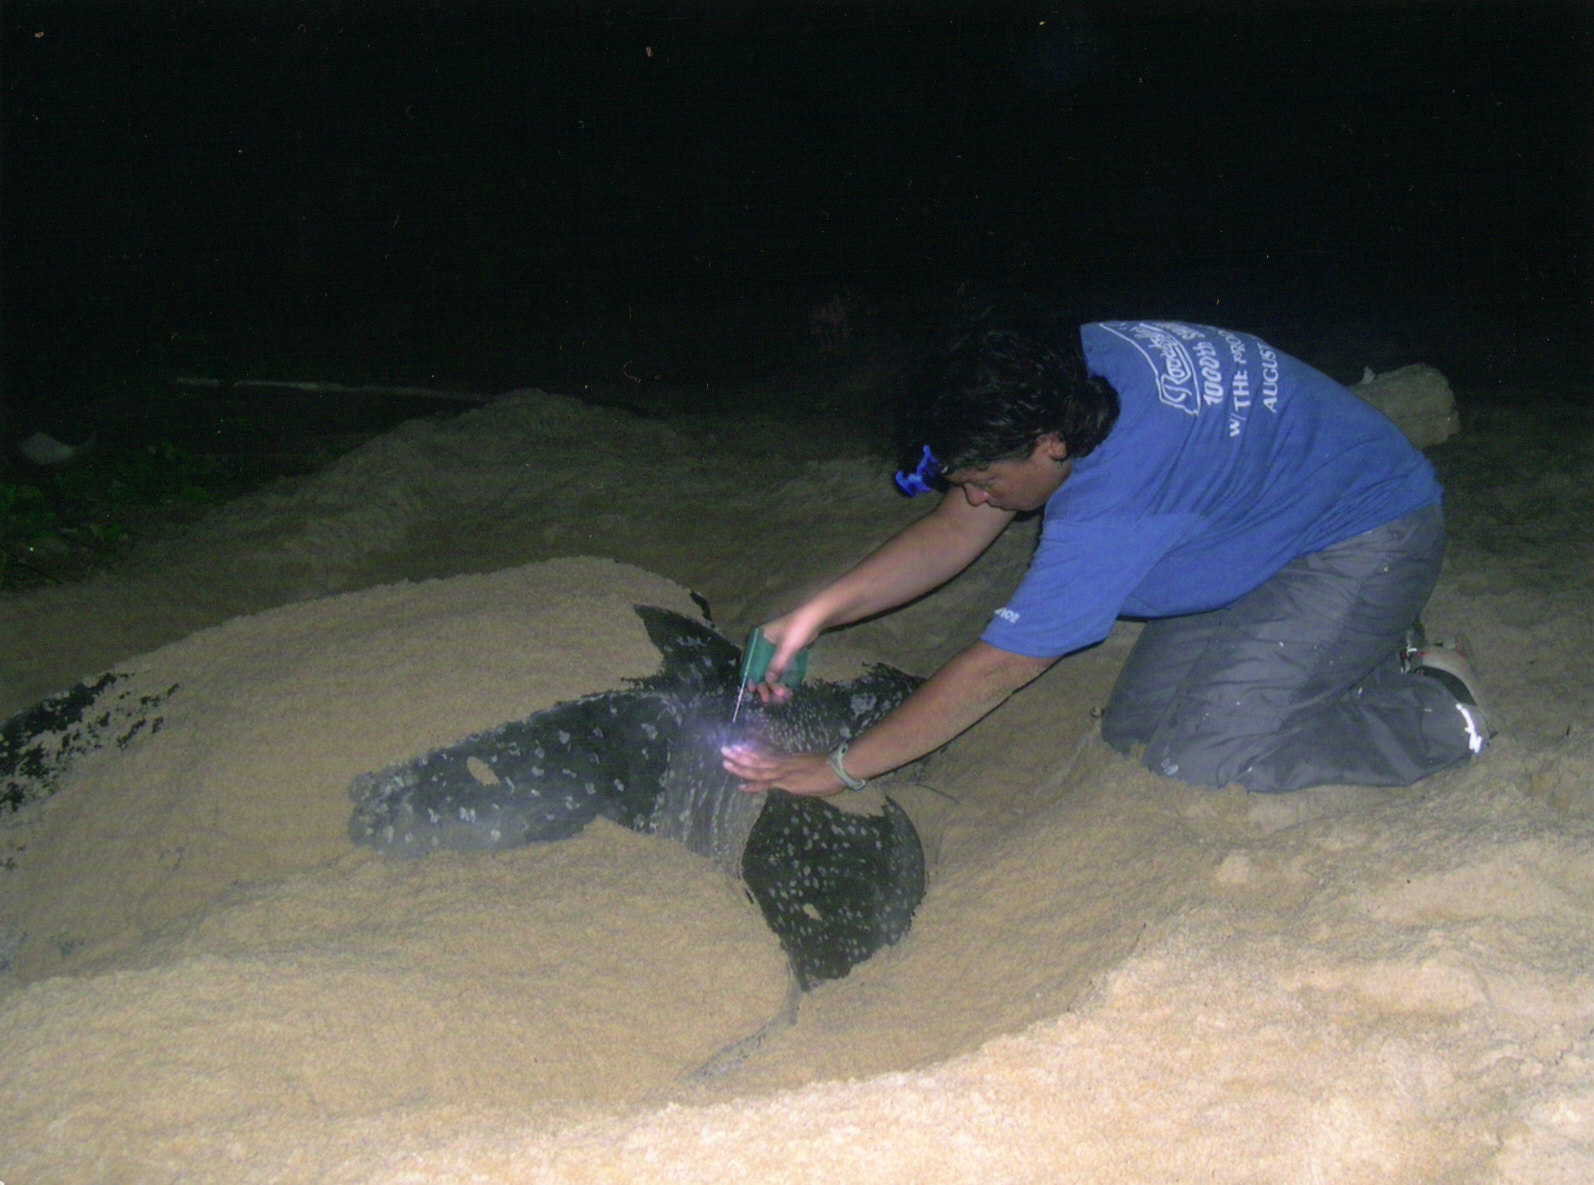 Micro-chipping a leatherback turtle.